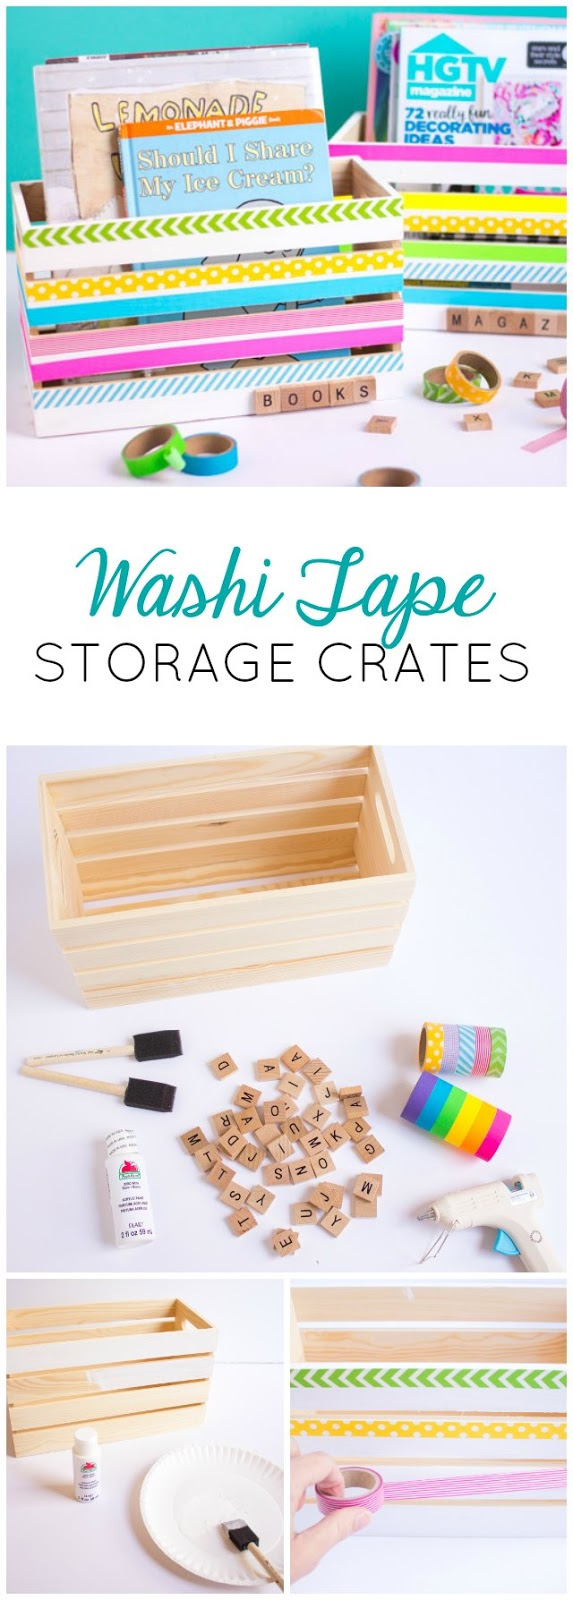 Such a fun washi tape craft idea - DIY wood storage crates perfect for books, craft supplies, and toys!